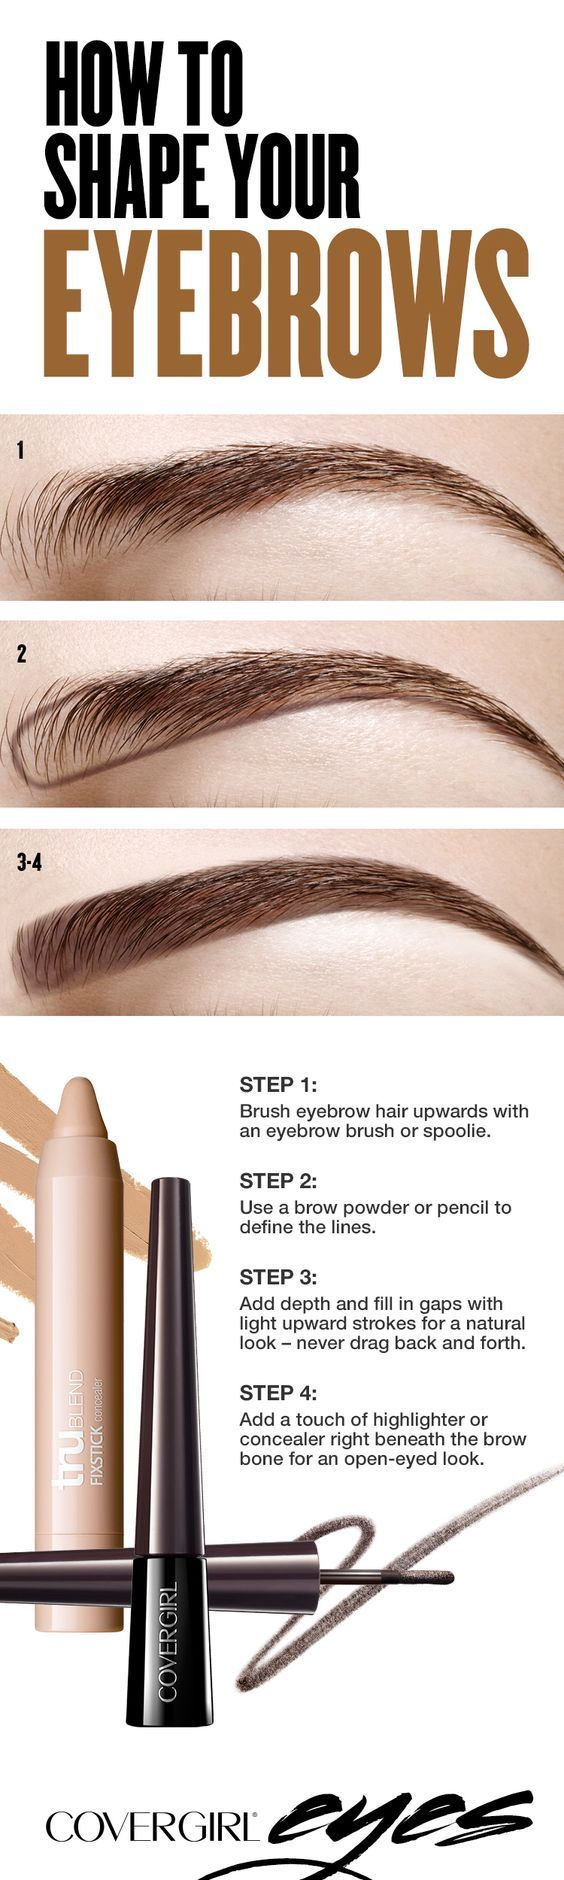 Photo of 15 of the Most Popular Makeup Tips on Pinterest